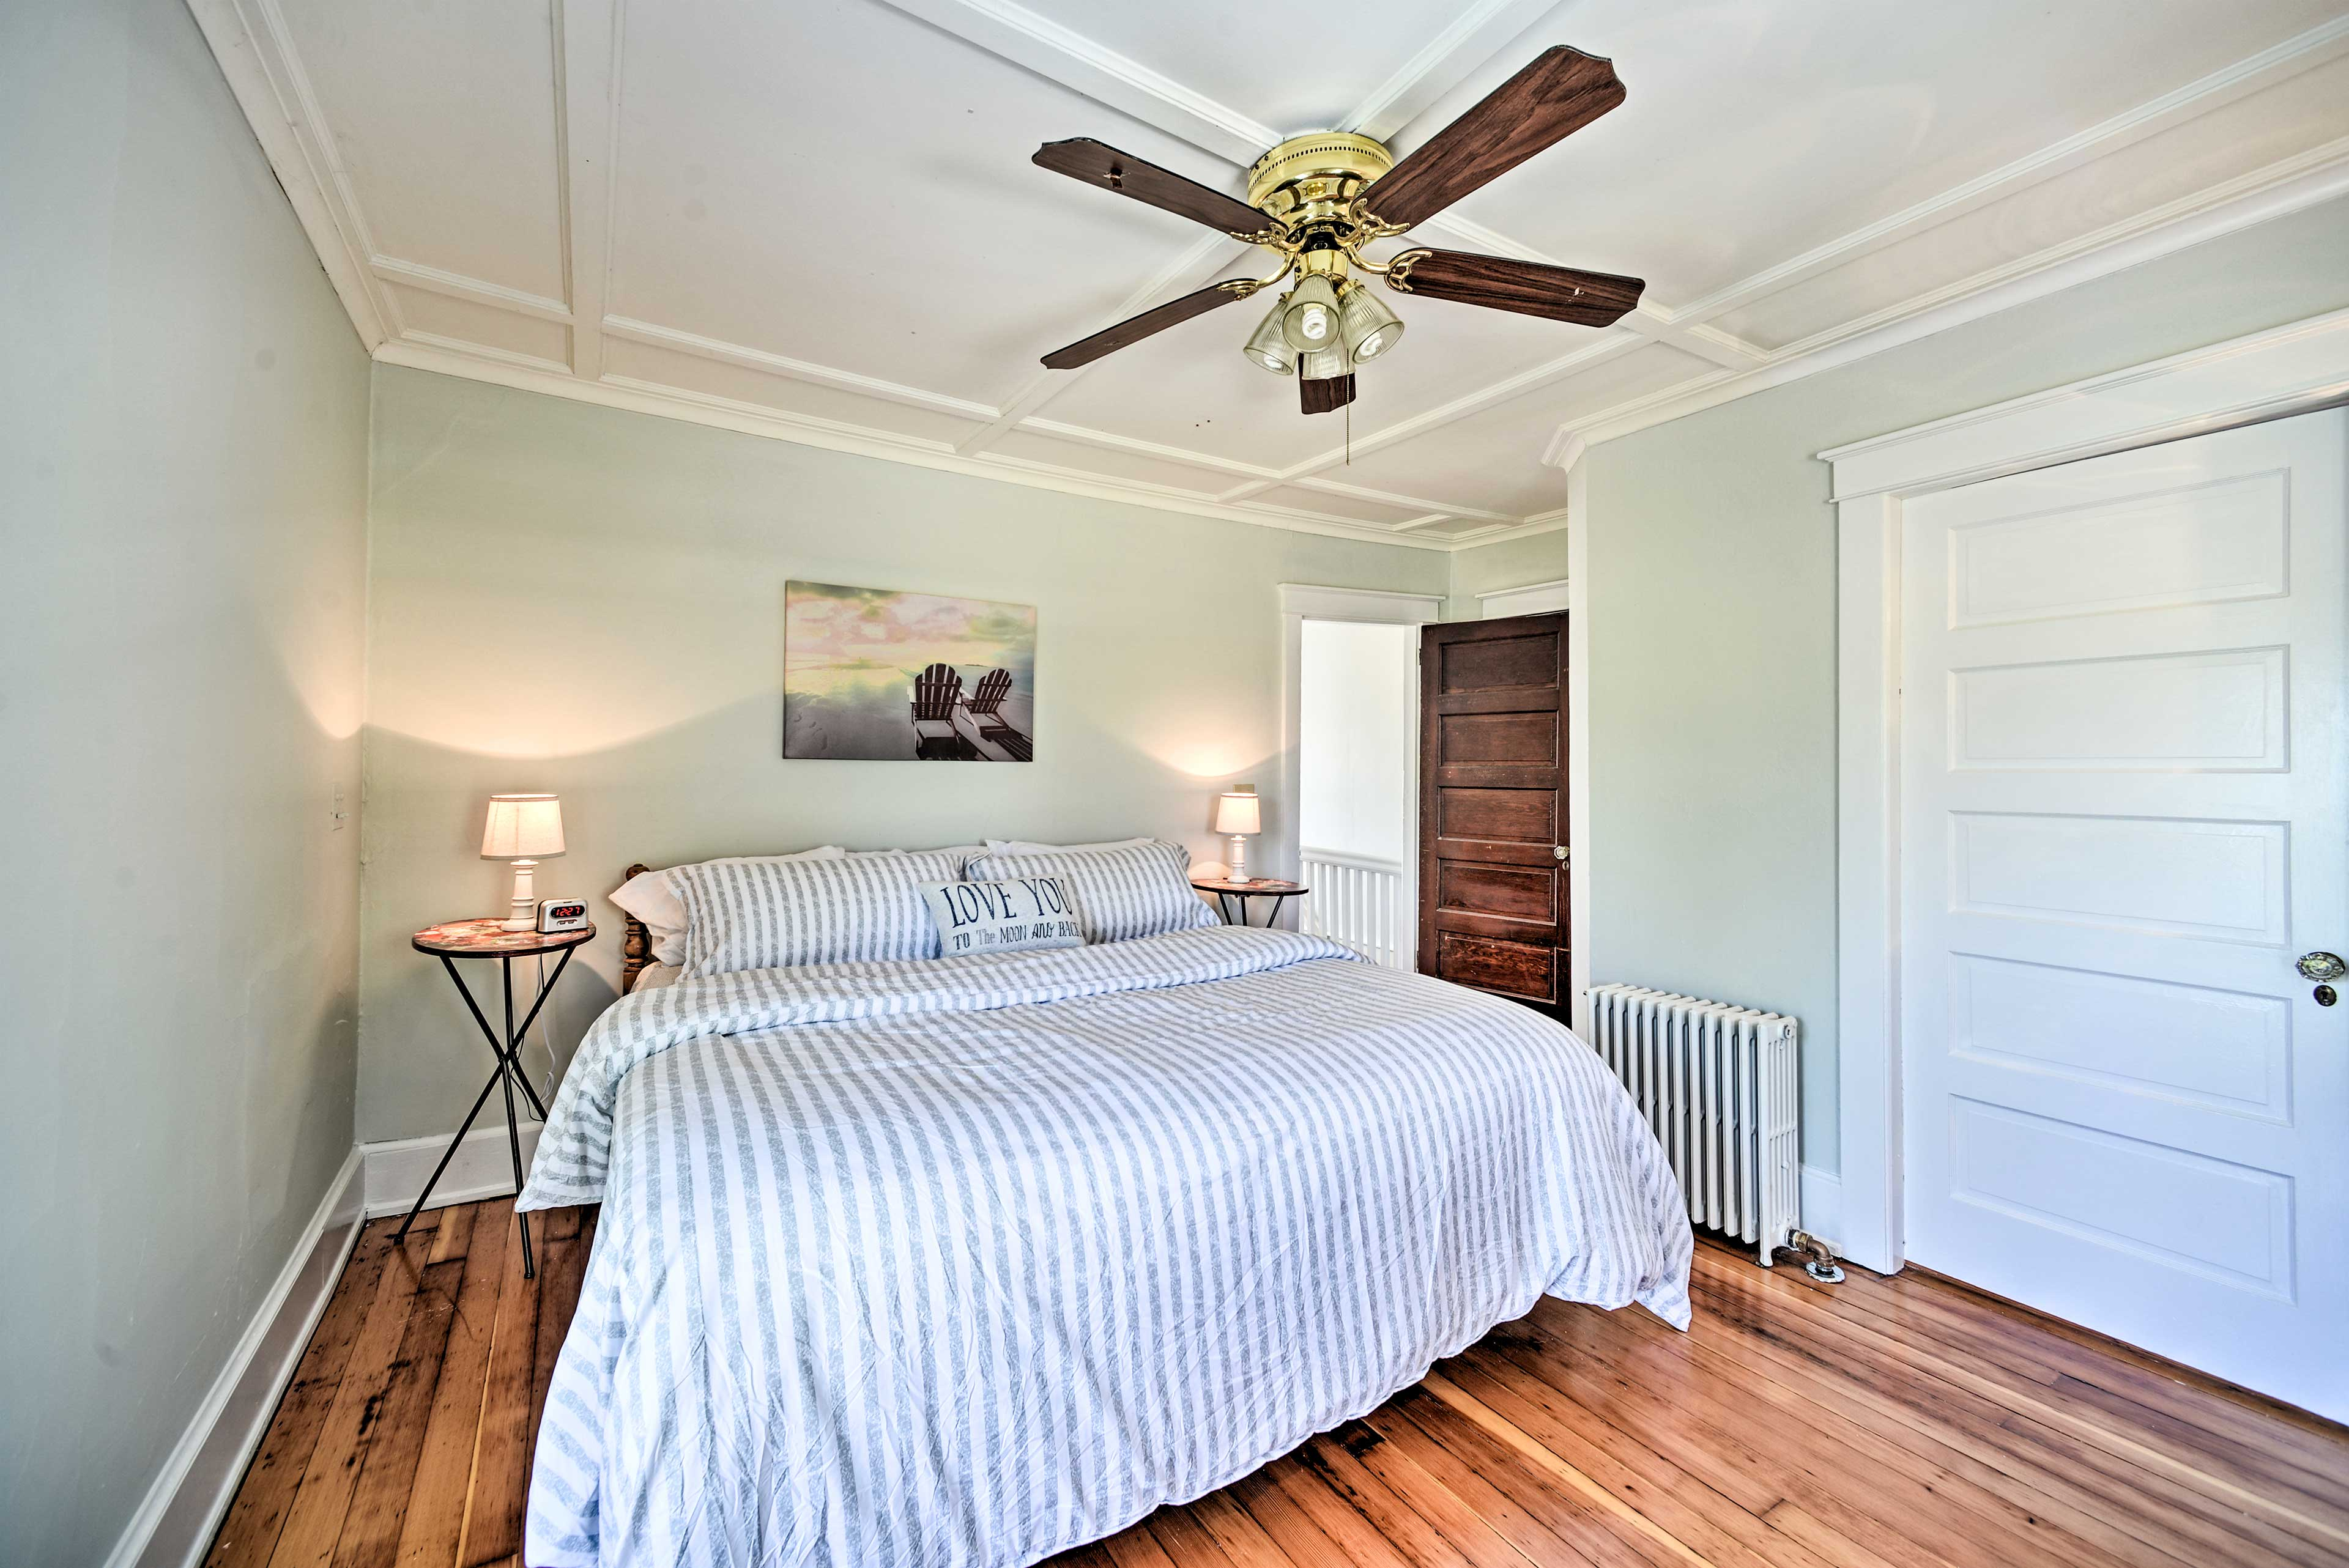 The ceiling fan will keep air flowing while you sleep.